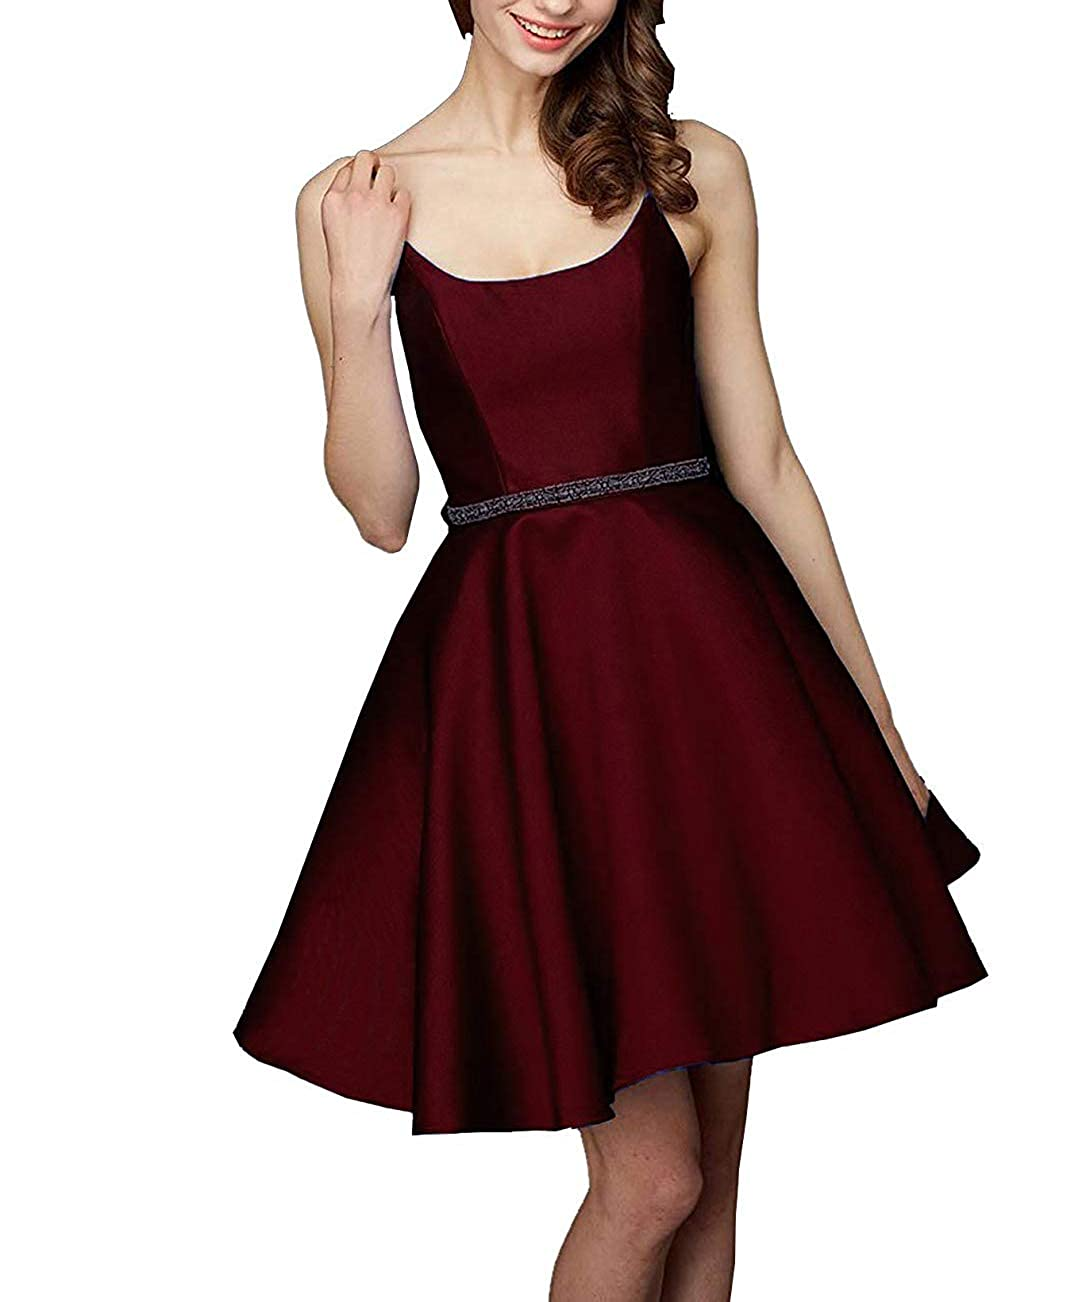 Burgundy FeiYueXinXing Satin KneeLength Strap Prom Party Gowns Junior's Short Homecoming Dresses